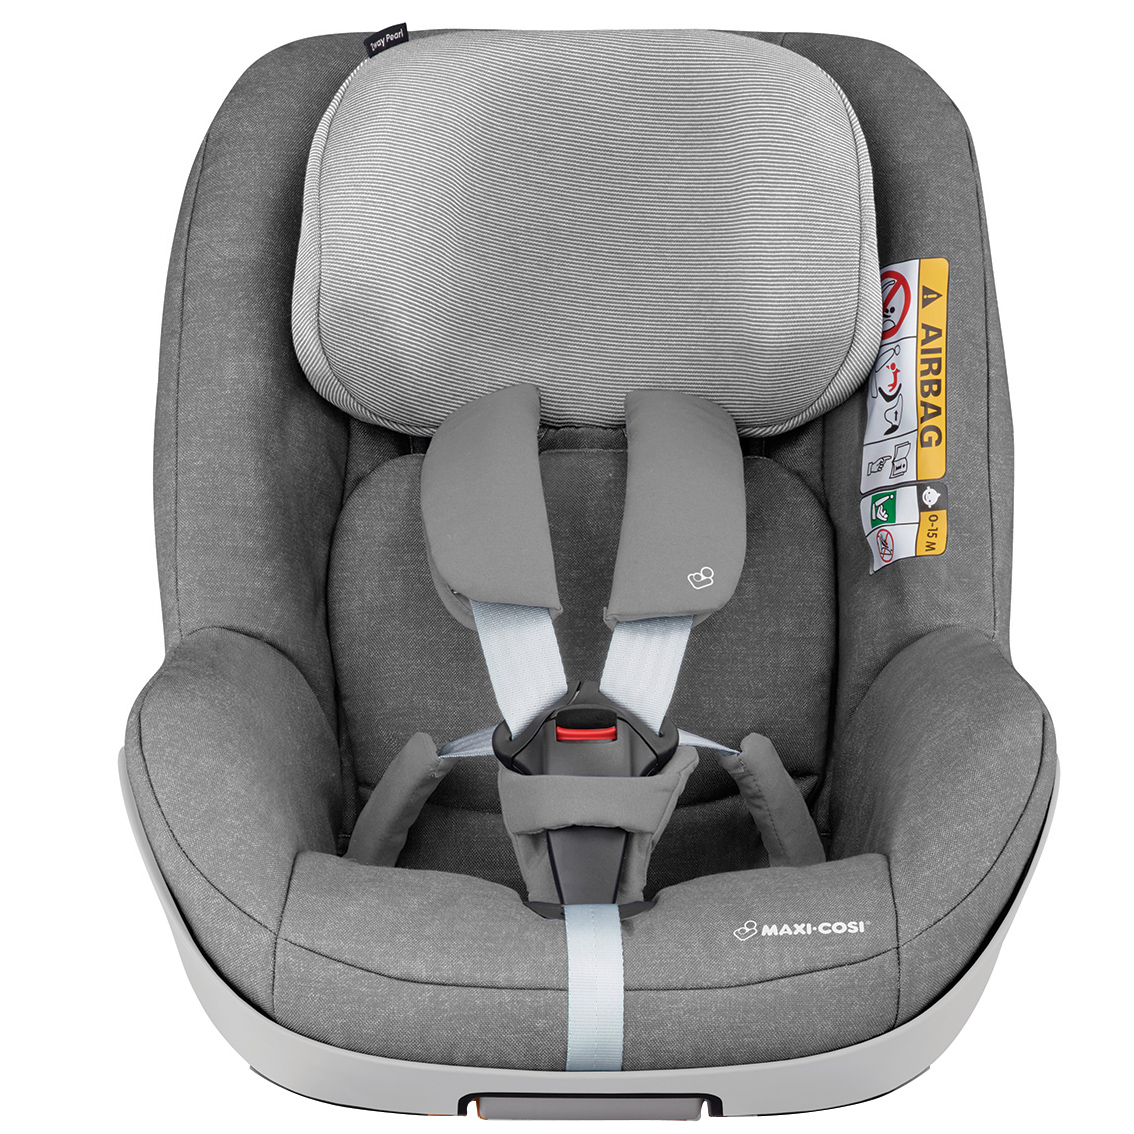 maxi cosi safety seat 2way pearl 2018 nomad grey buy at kidsroom car seats. Black Bedroom Furniture Sets. Home Design Ideas